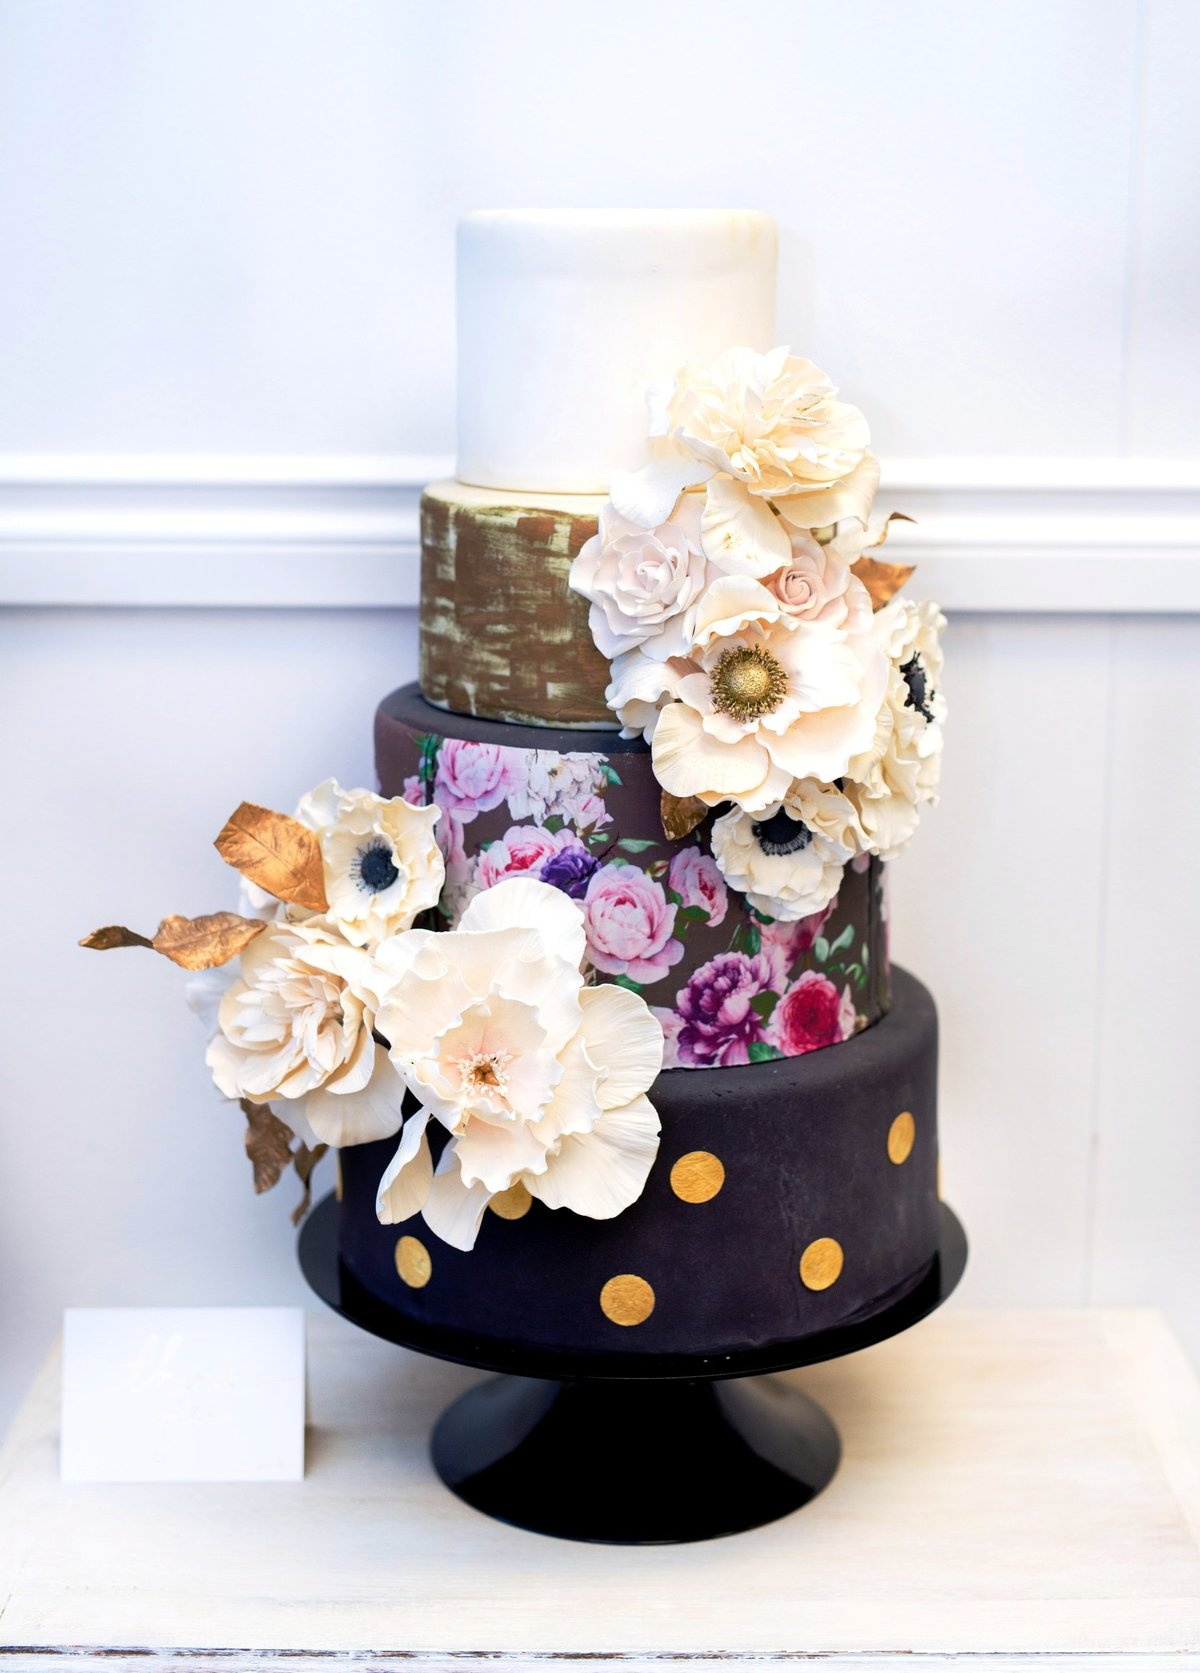 Calgary_Weddings_Whippt_Deserts_Catering_2016_HR 0008